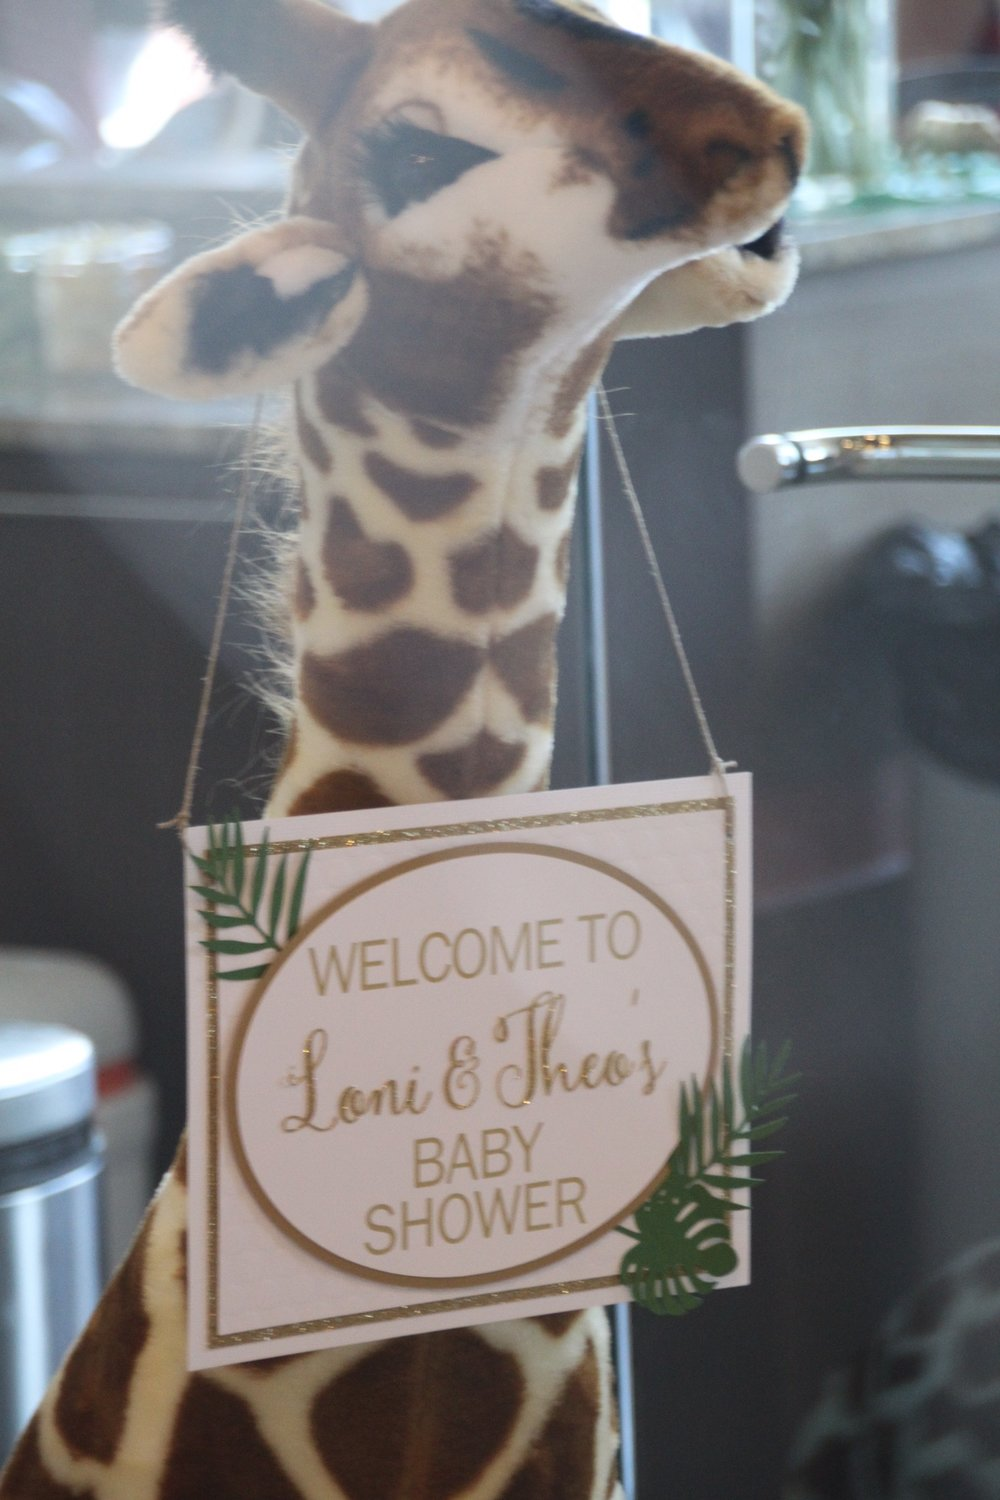 A life-size giraffe with a custom sign welcomed guests to the shower